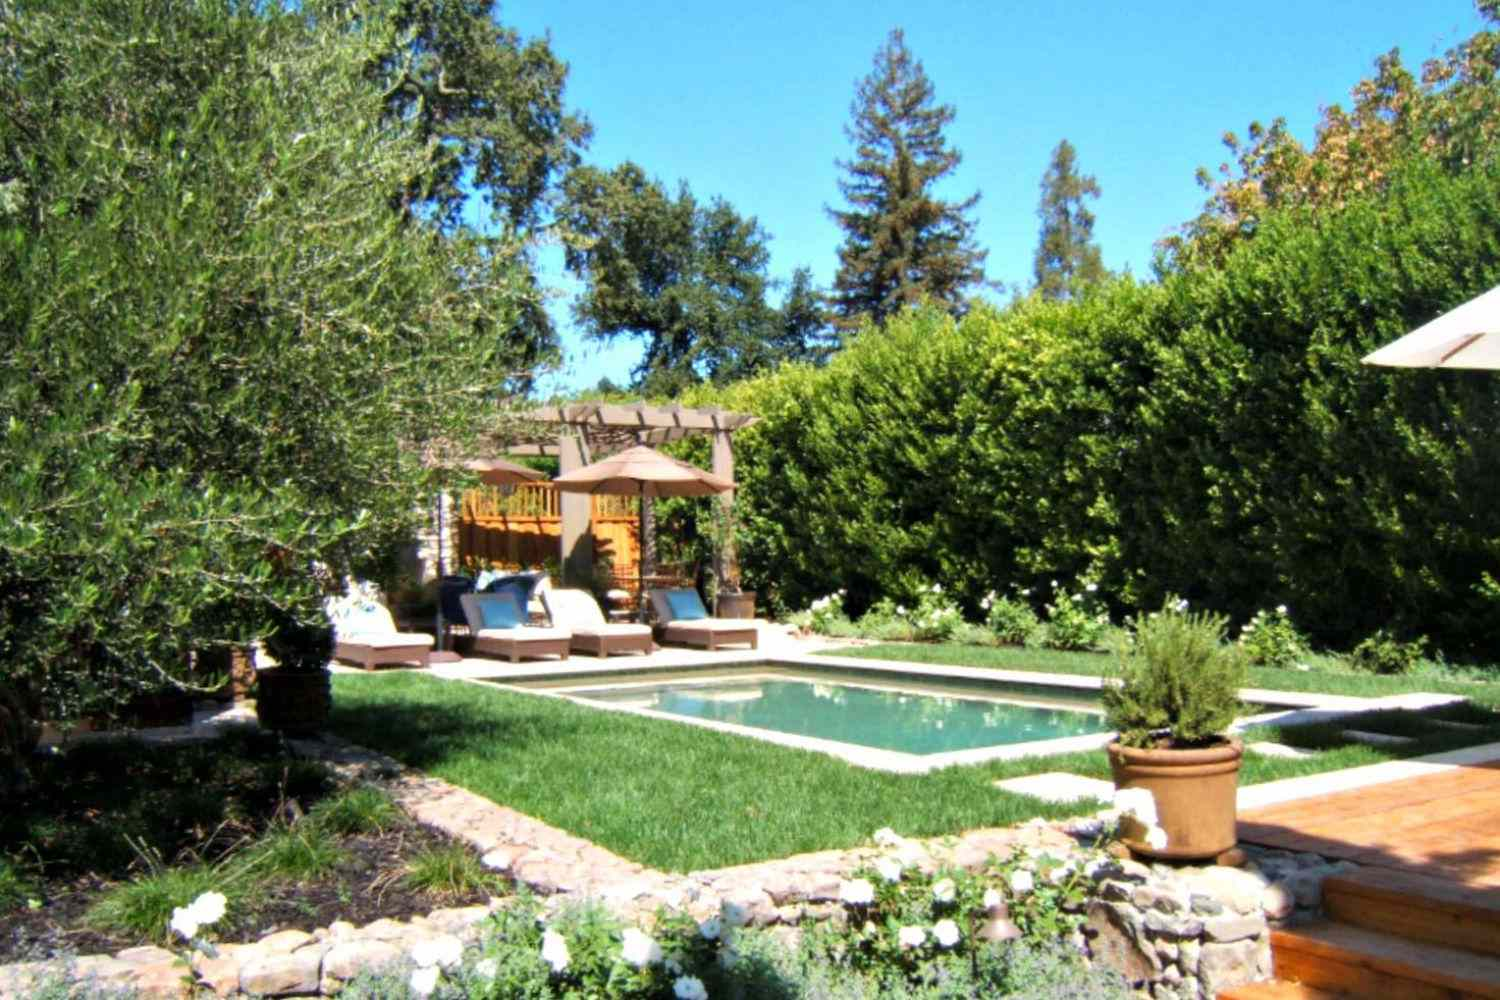 Mediterranean pool design with shrubbery fence and potted plants.